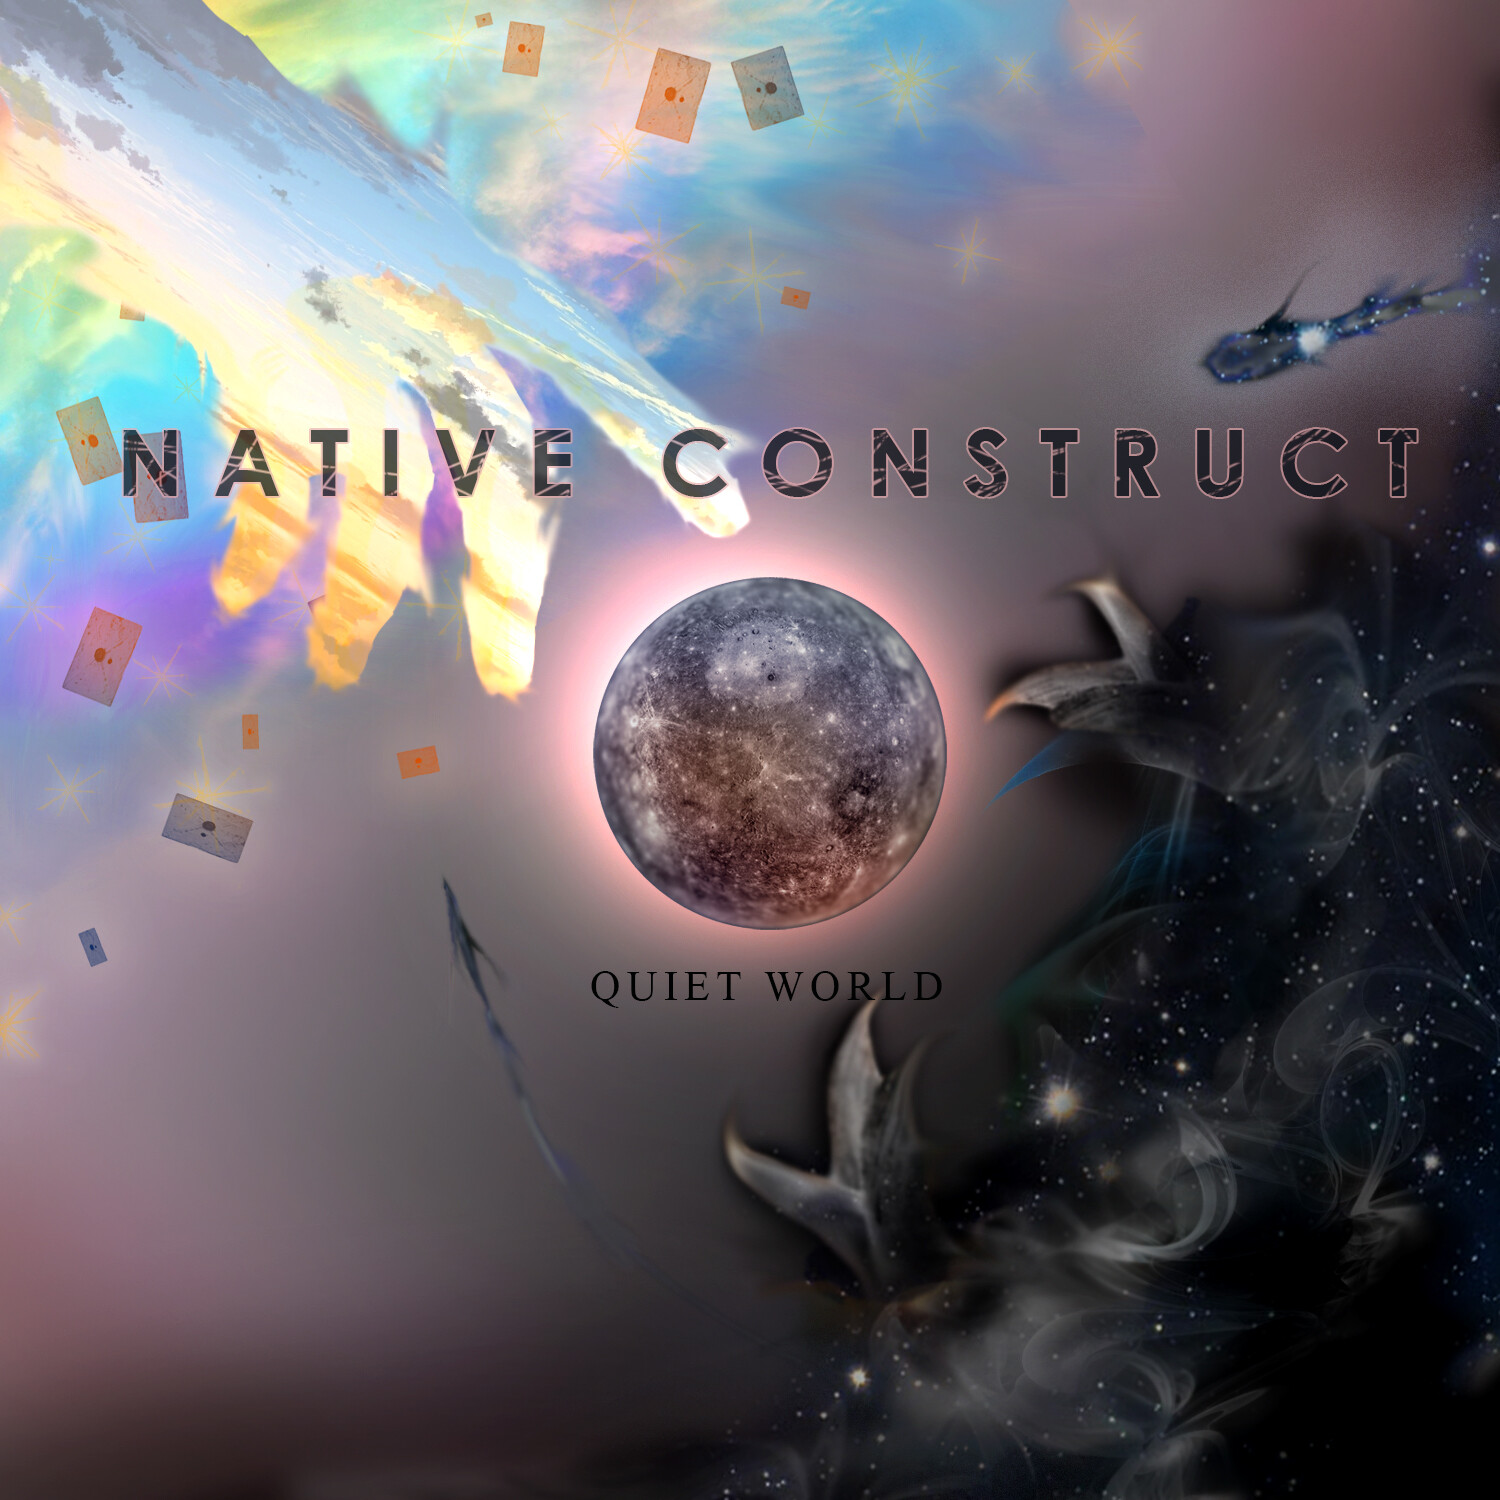 Native Construct Album Inspired Cover Art